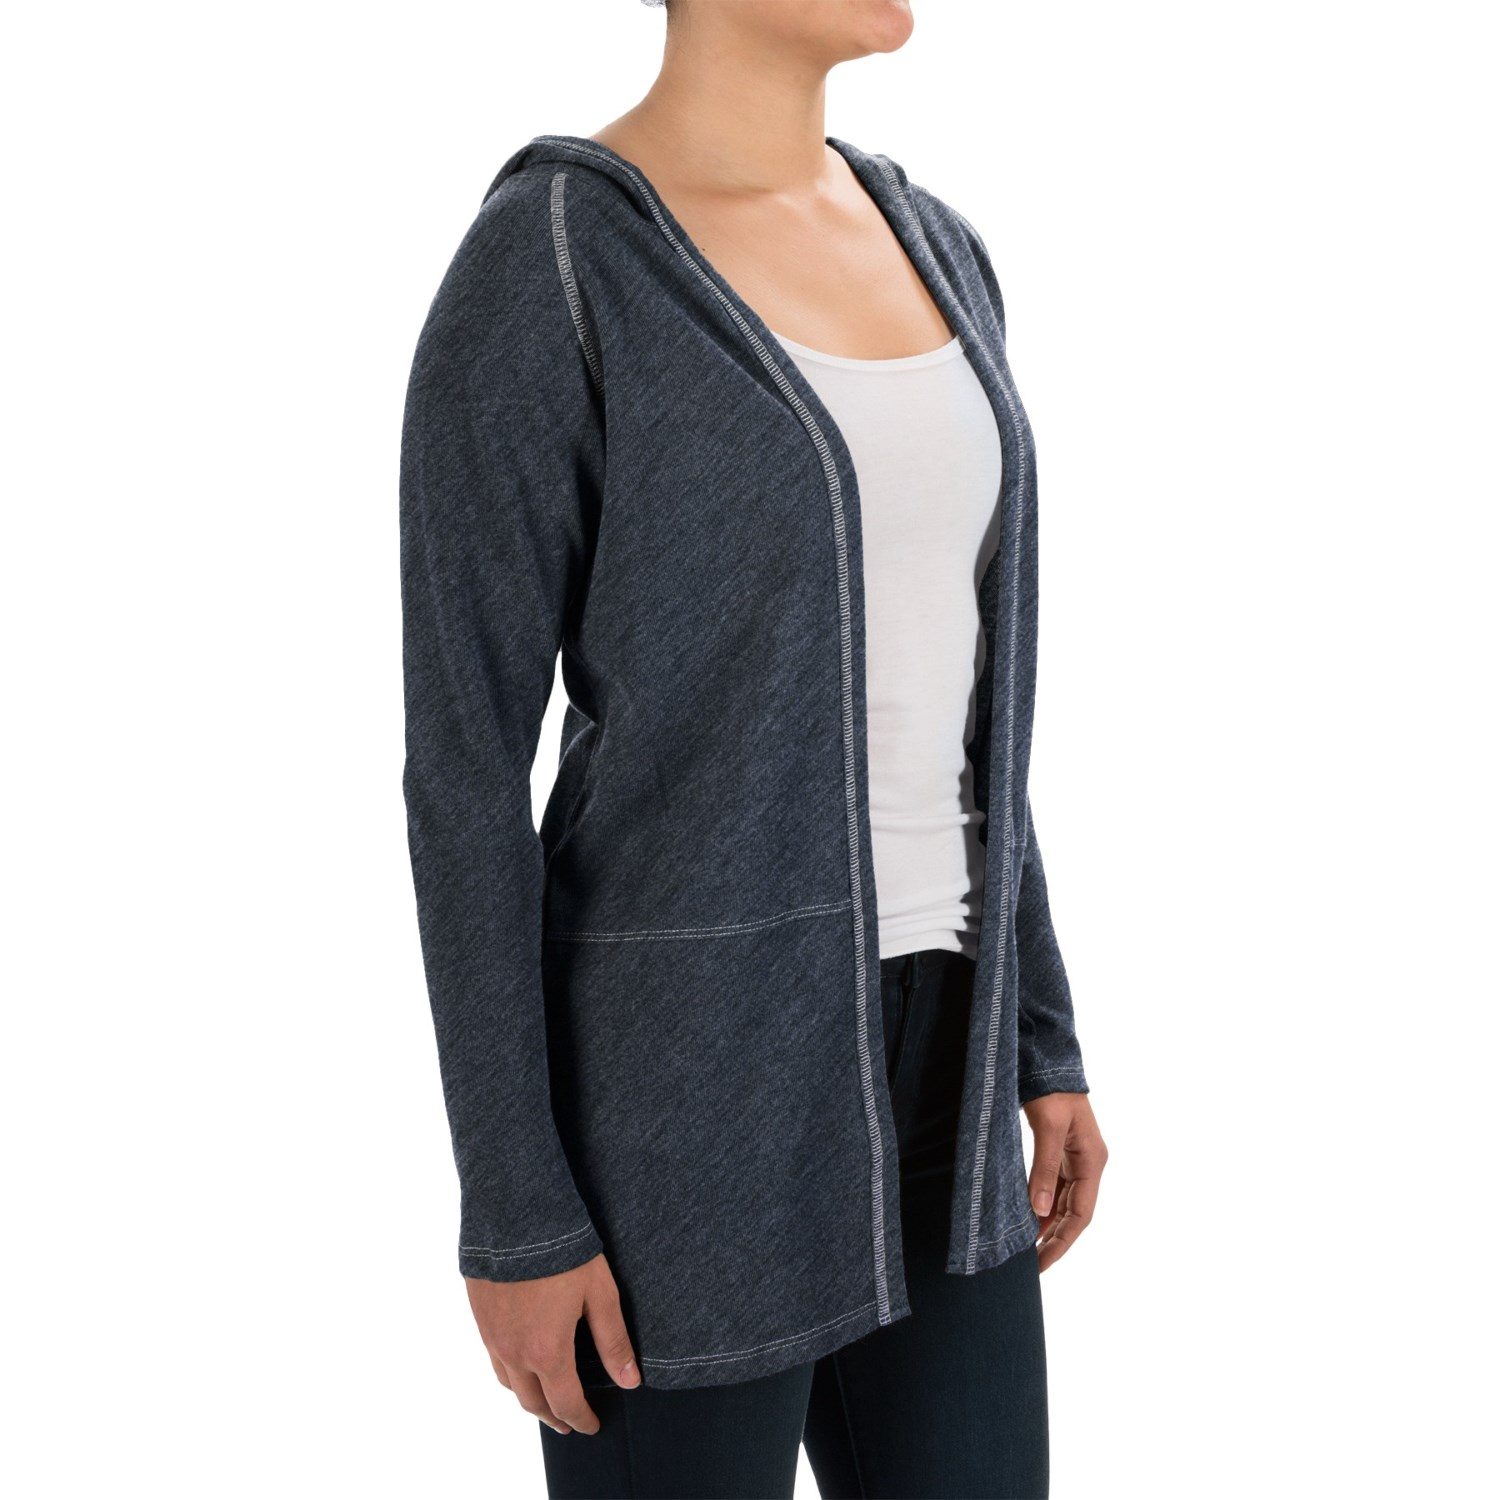 Explore the latest collection of Calvin Klein hoodies, sweatshirts, sweaters and cardigans for women. These timeless pieces are known for their soft tones, light fabrics and comfortable silhouettes and are a necessity for cooler temperatures.